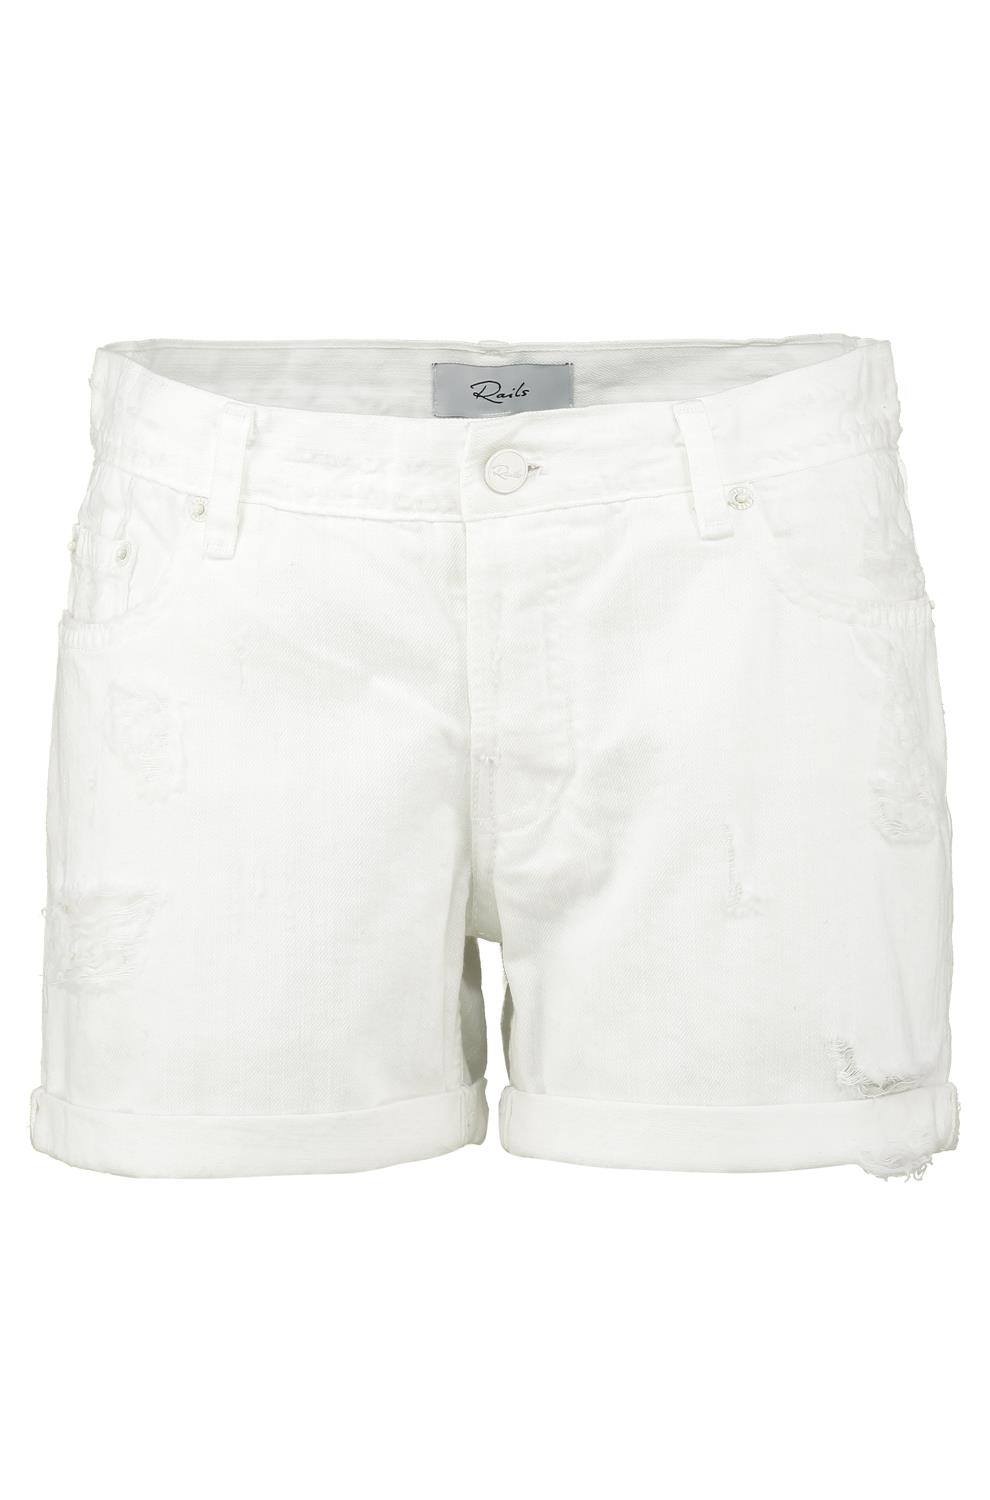 white shorts logan denim shorts in white image ... sbwzylp